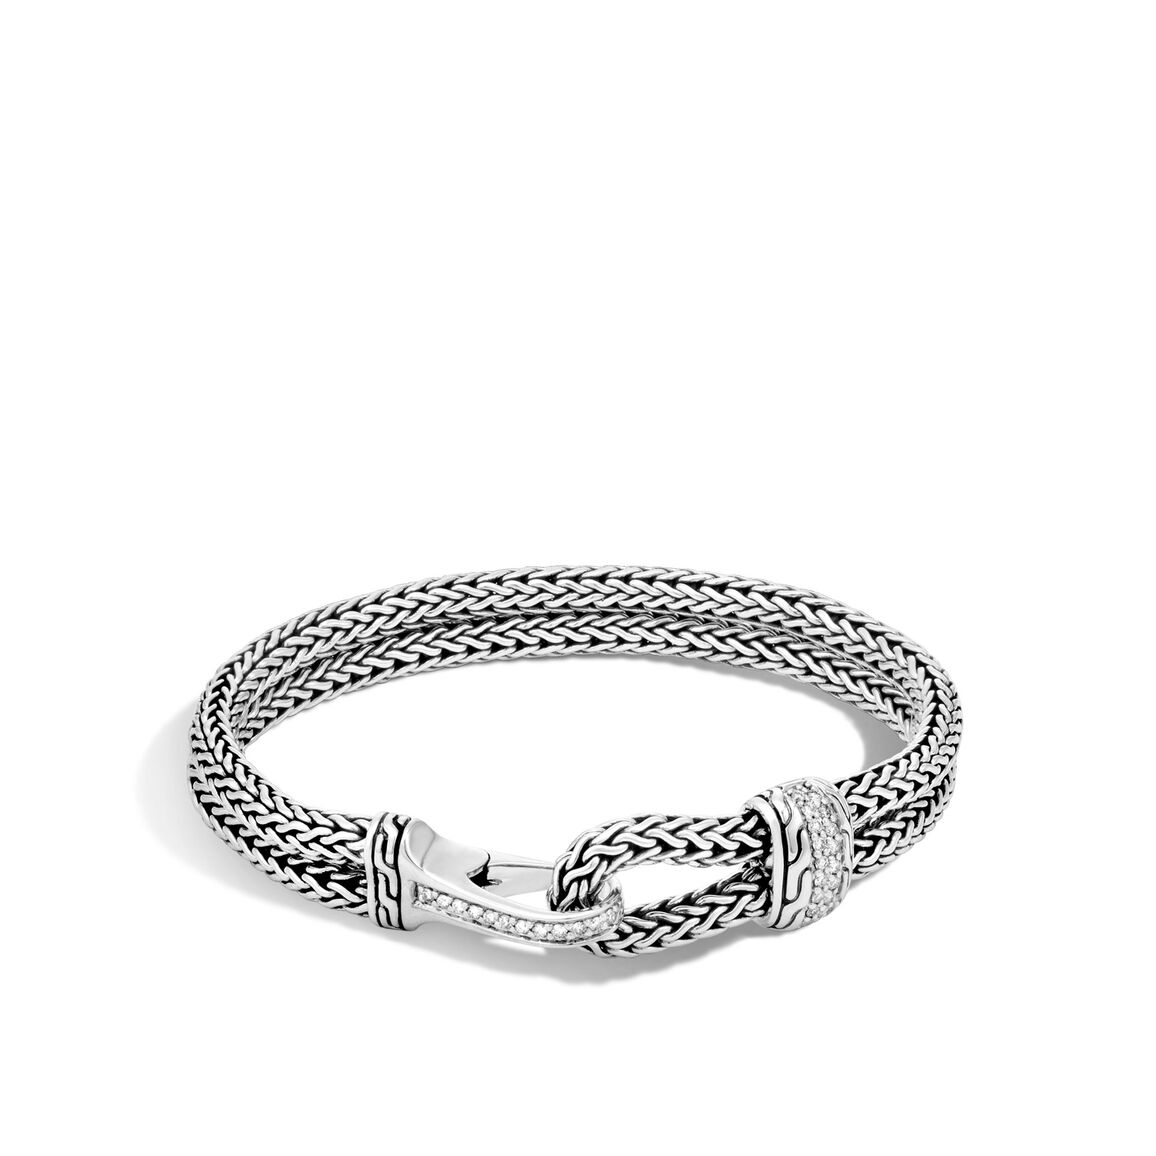 Classic Chain 9MM Bracelet in Silver with Diamonds